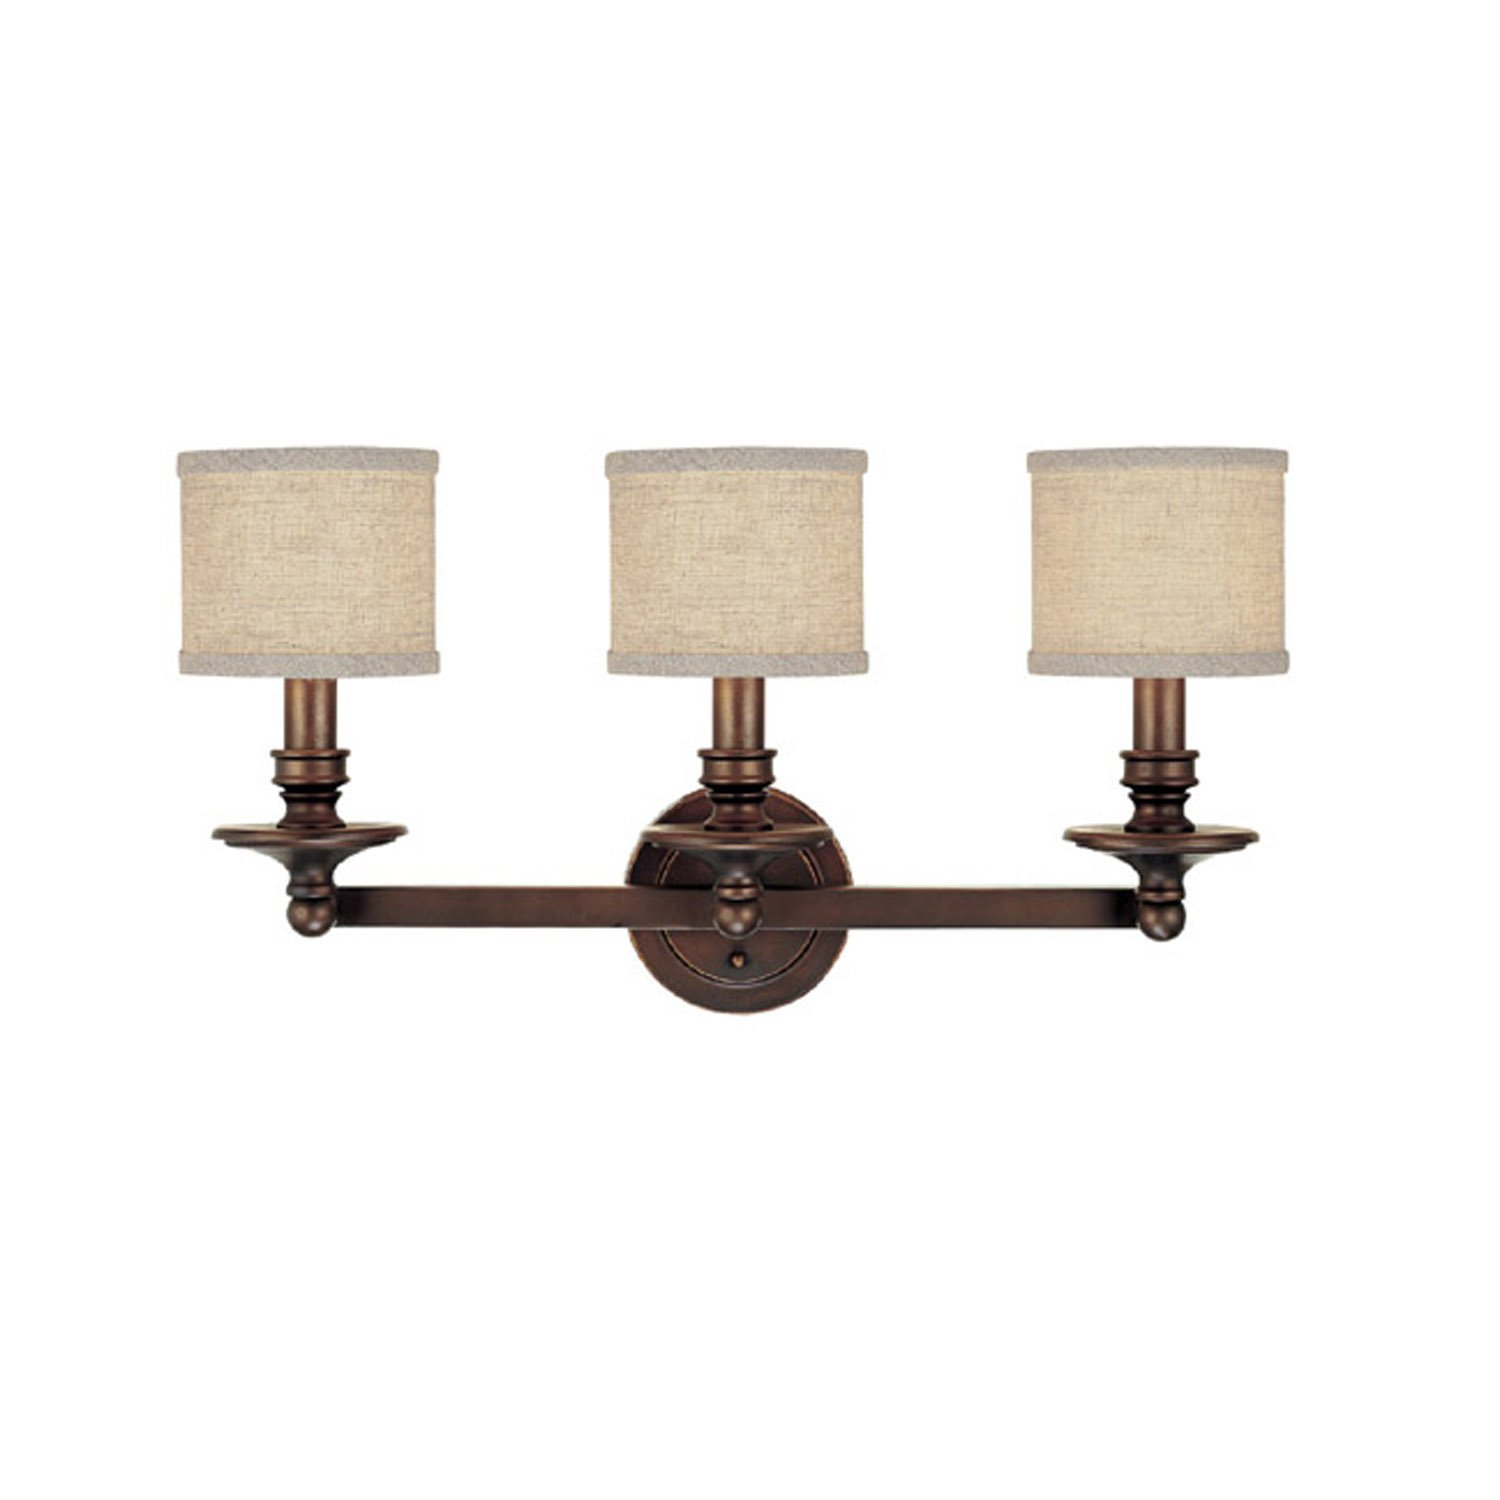 Capital Lighting 1238bb 450 Vanity With Beige Fabric Shades Burnished Bronze Finish Fixtures Com